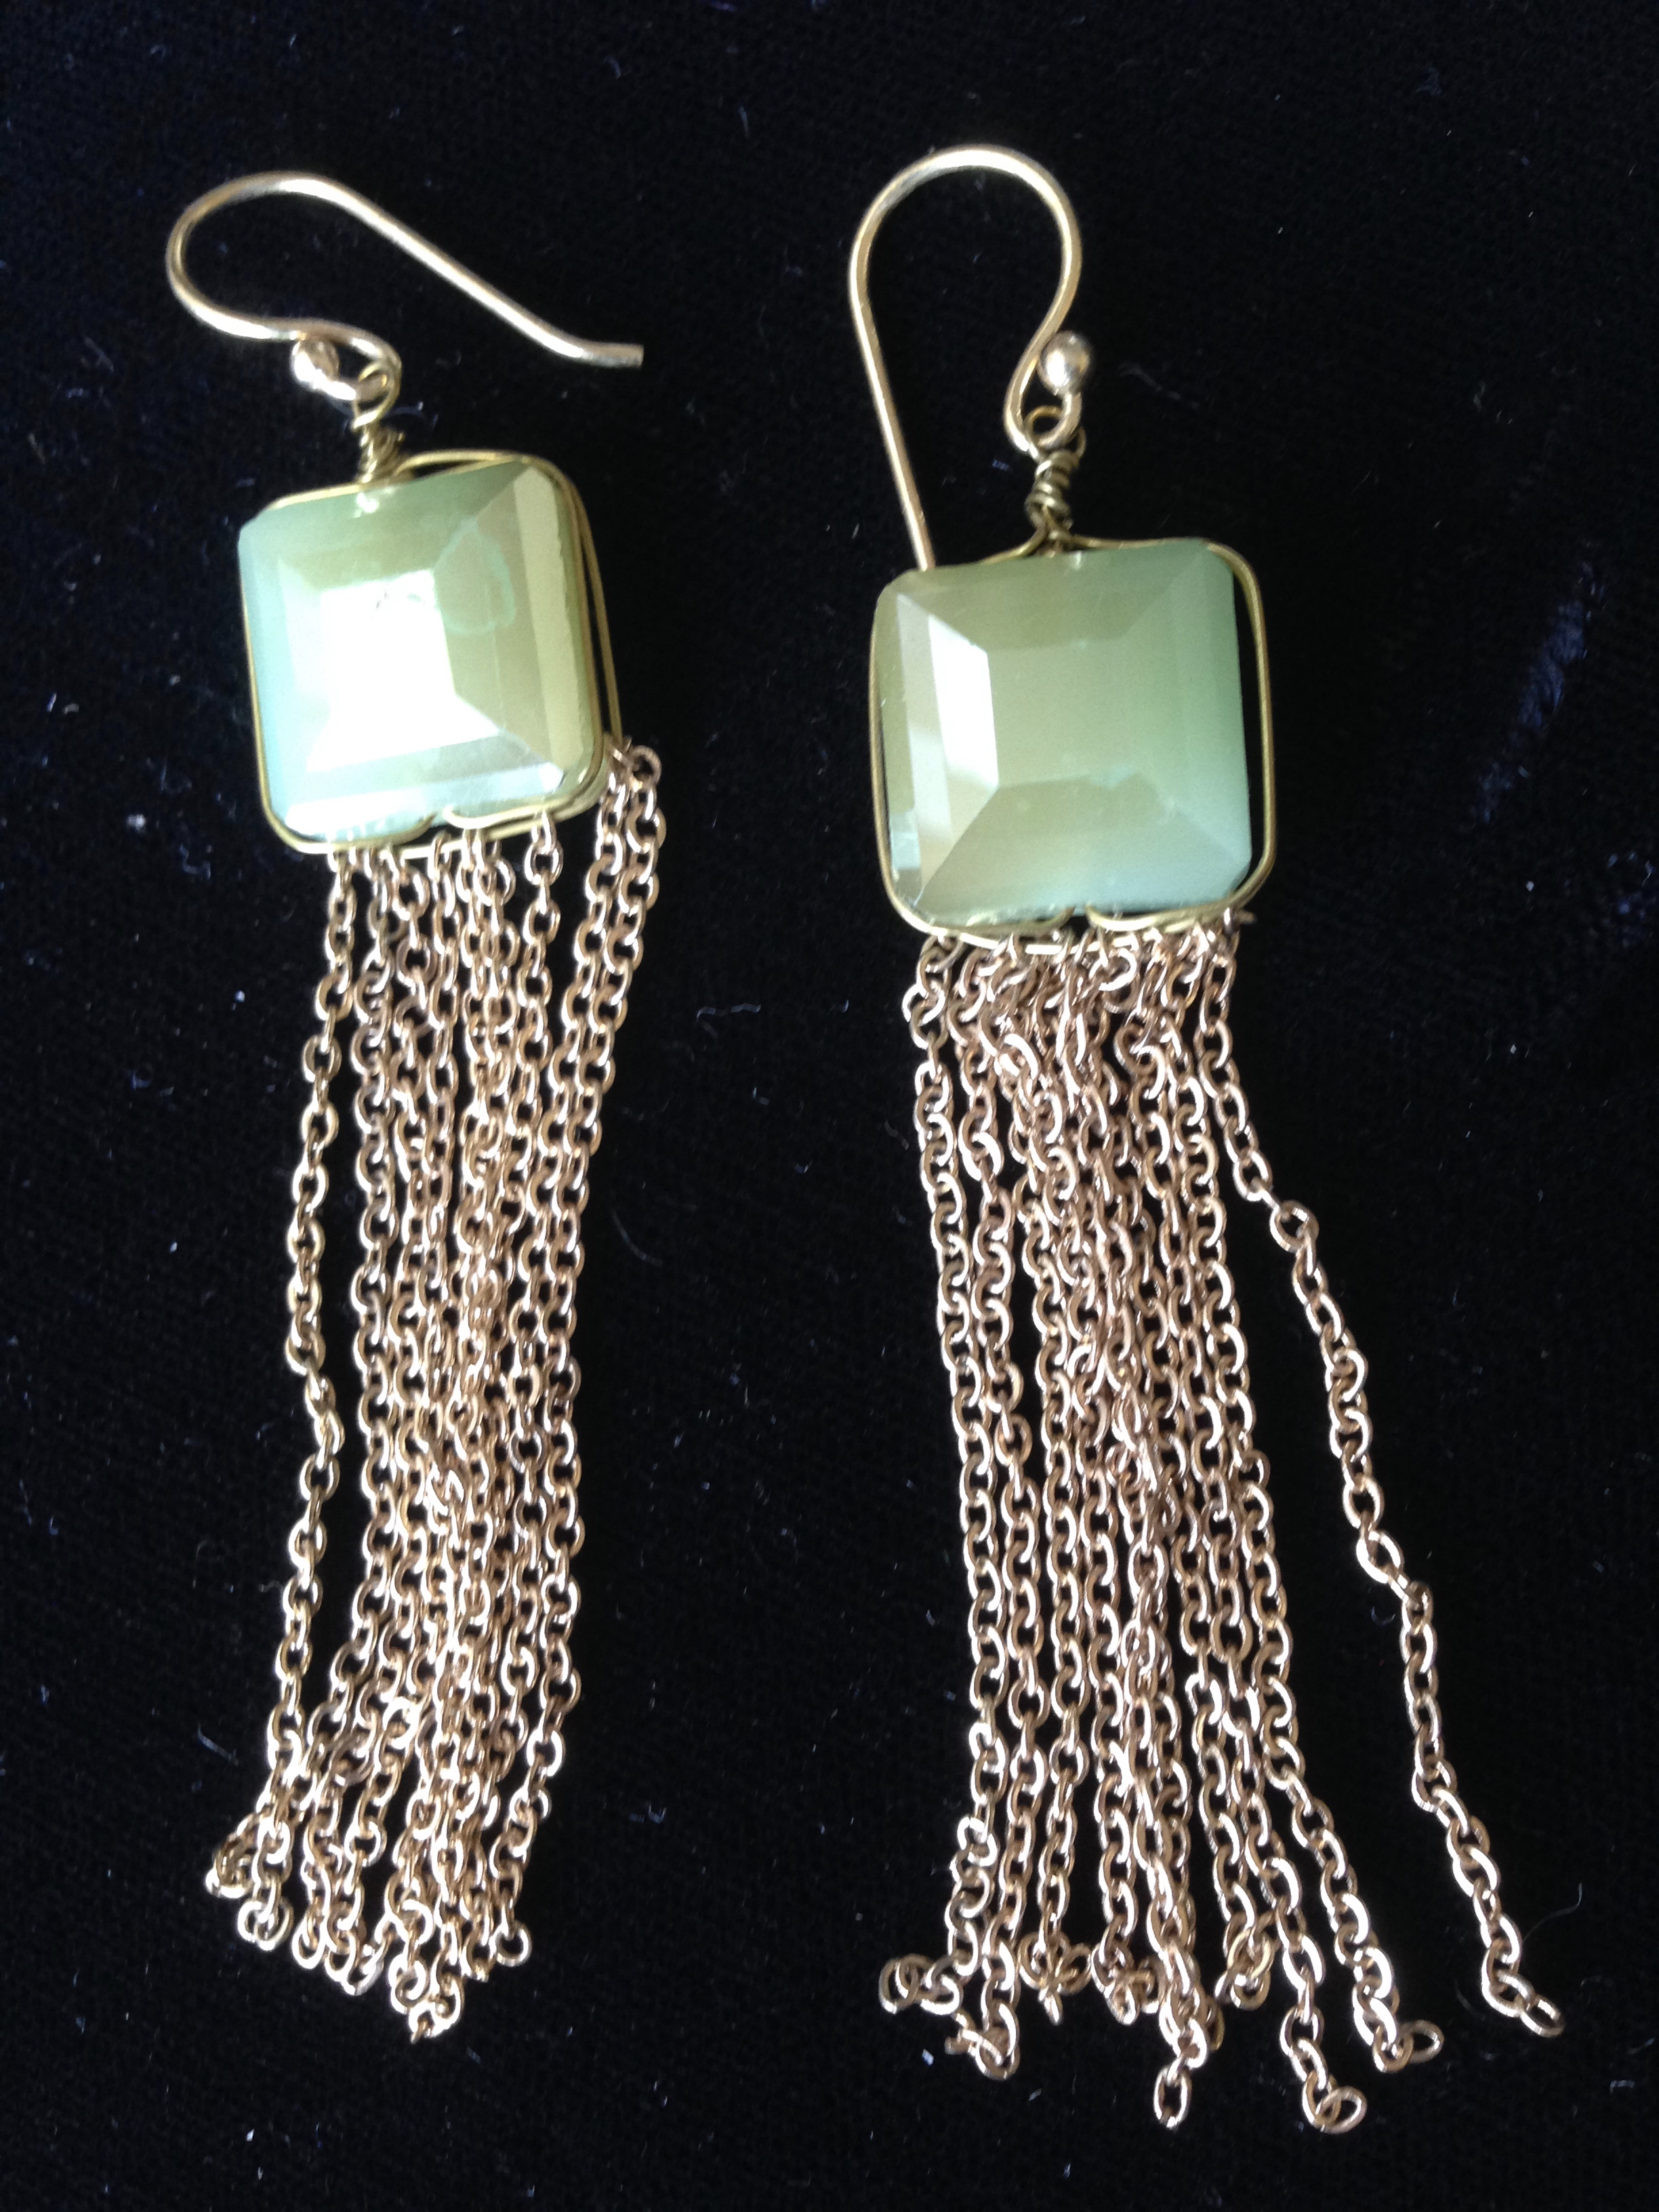 Dancing Green Earrings